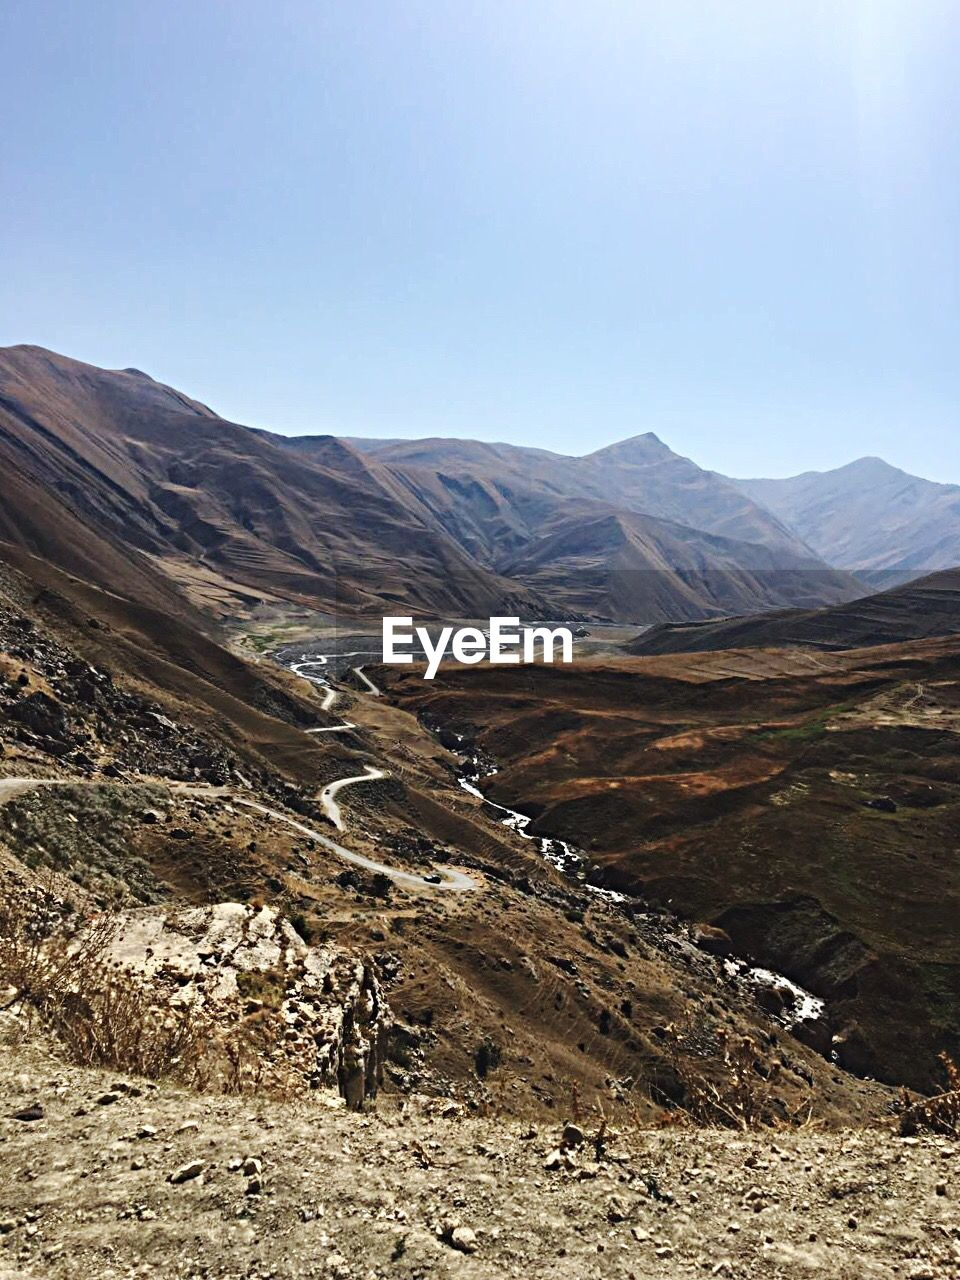 mountain, landscape, mountain range, scenics, nature, outdoors, beauty in nature, day, tranquility, arid climate, no people, sky